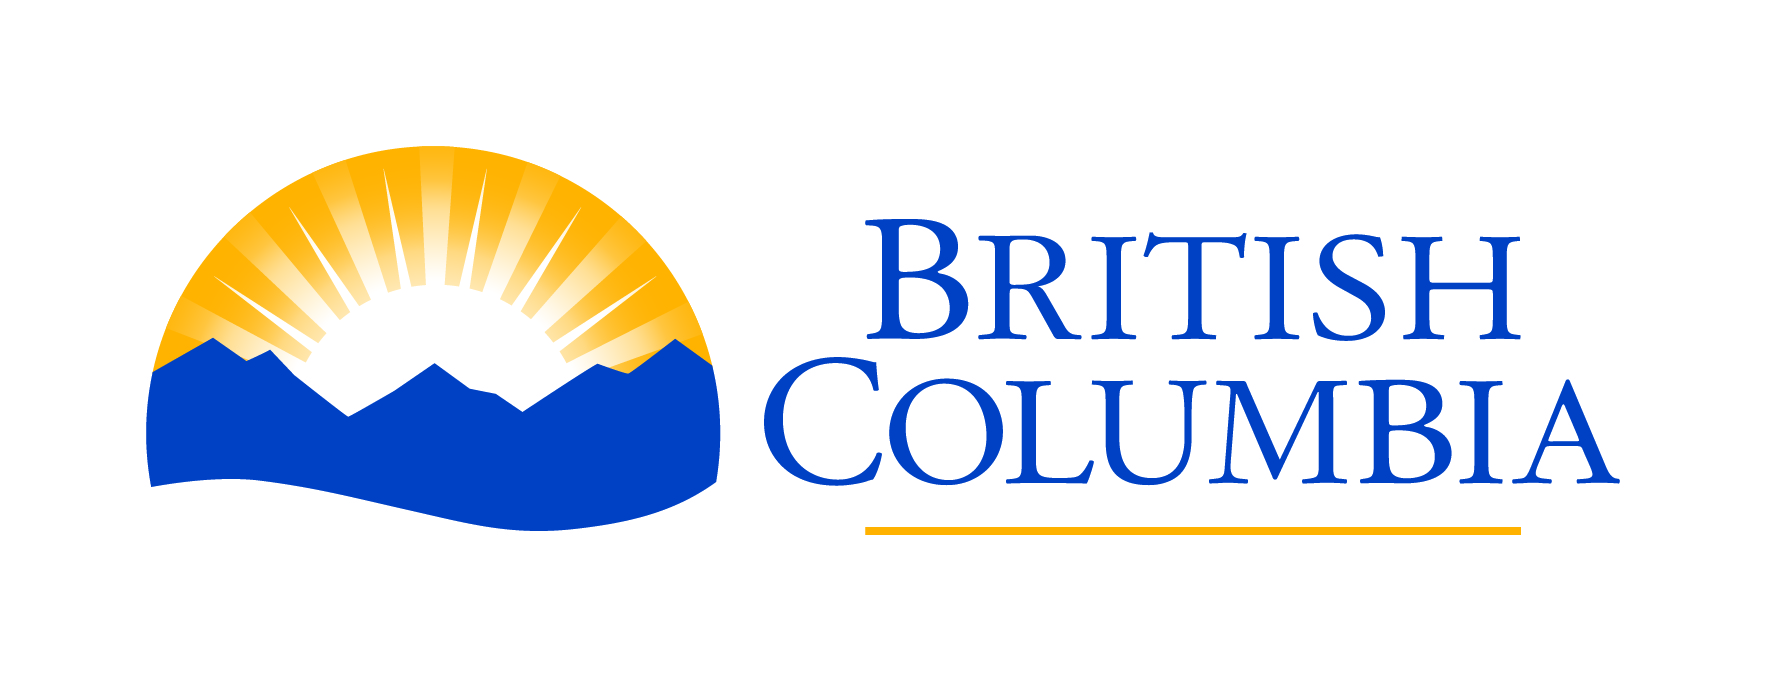 Image result for IMAGES FOR BRITISH COLUMBIA LOGOS